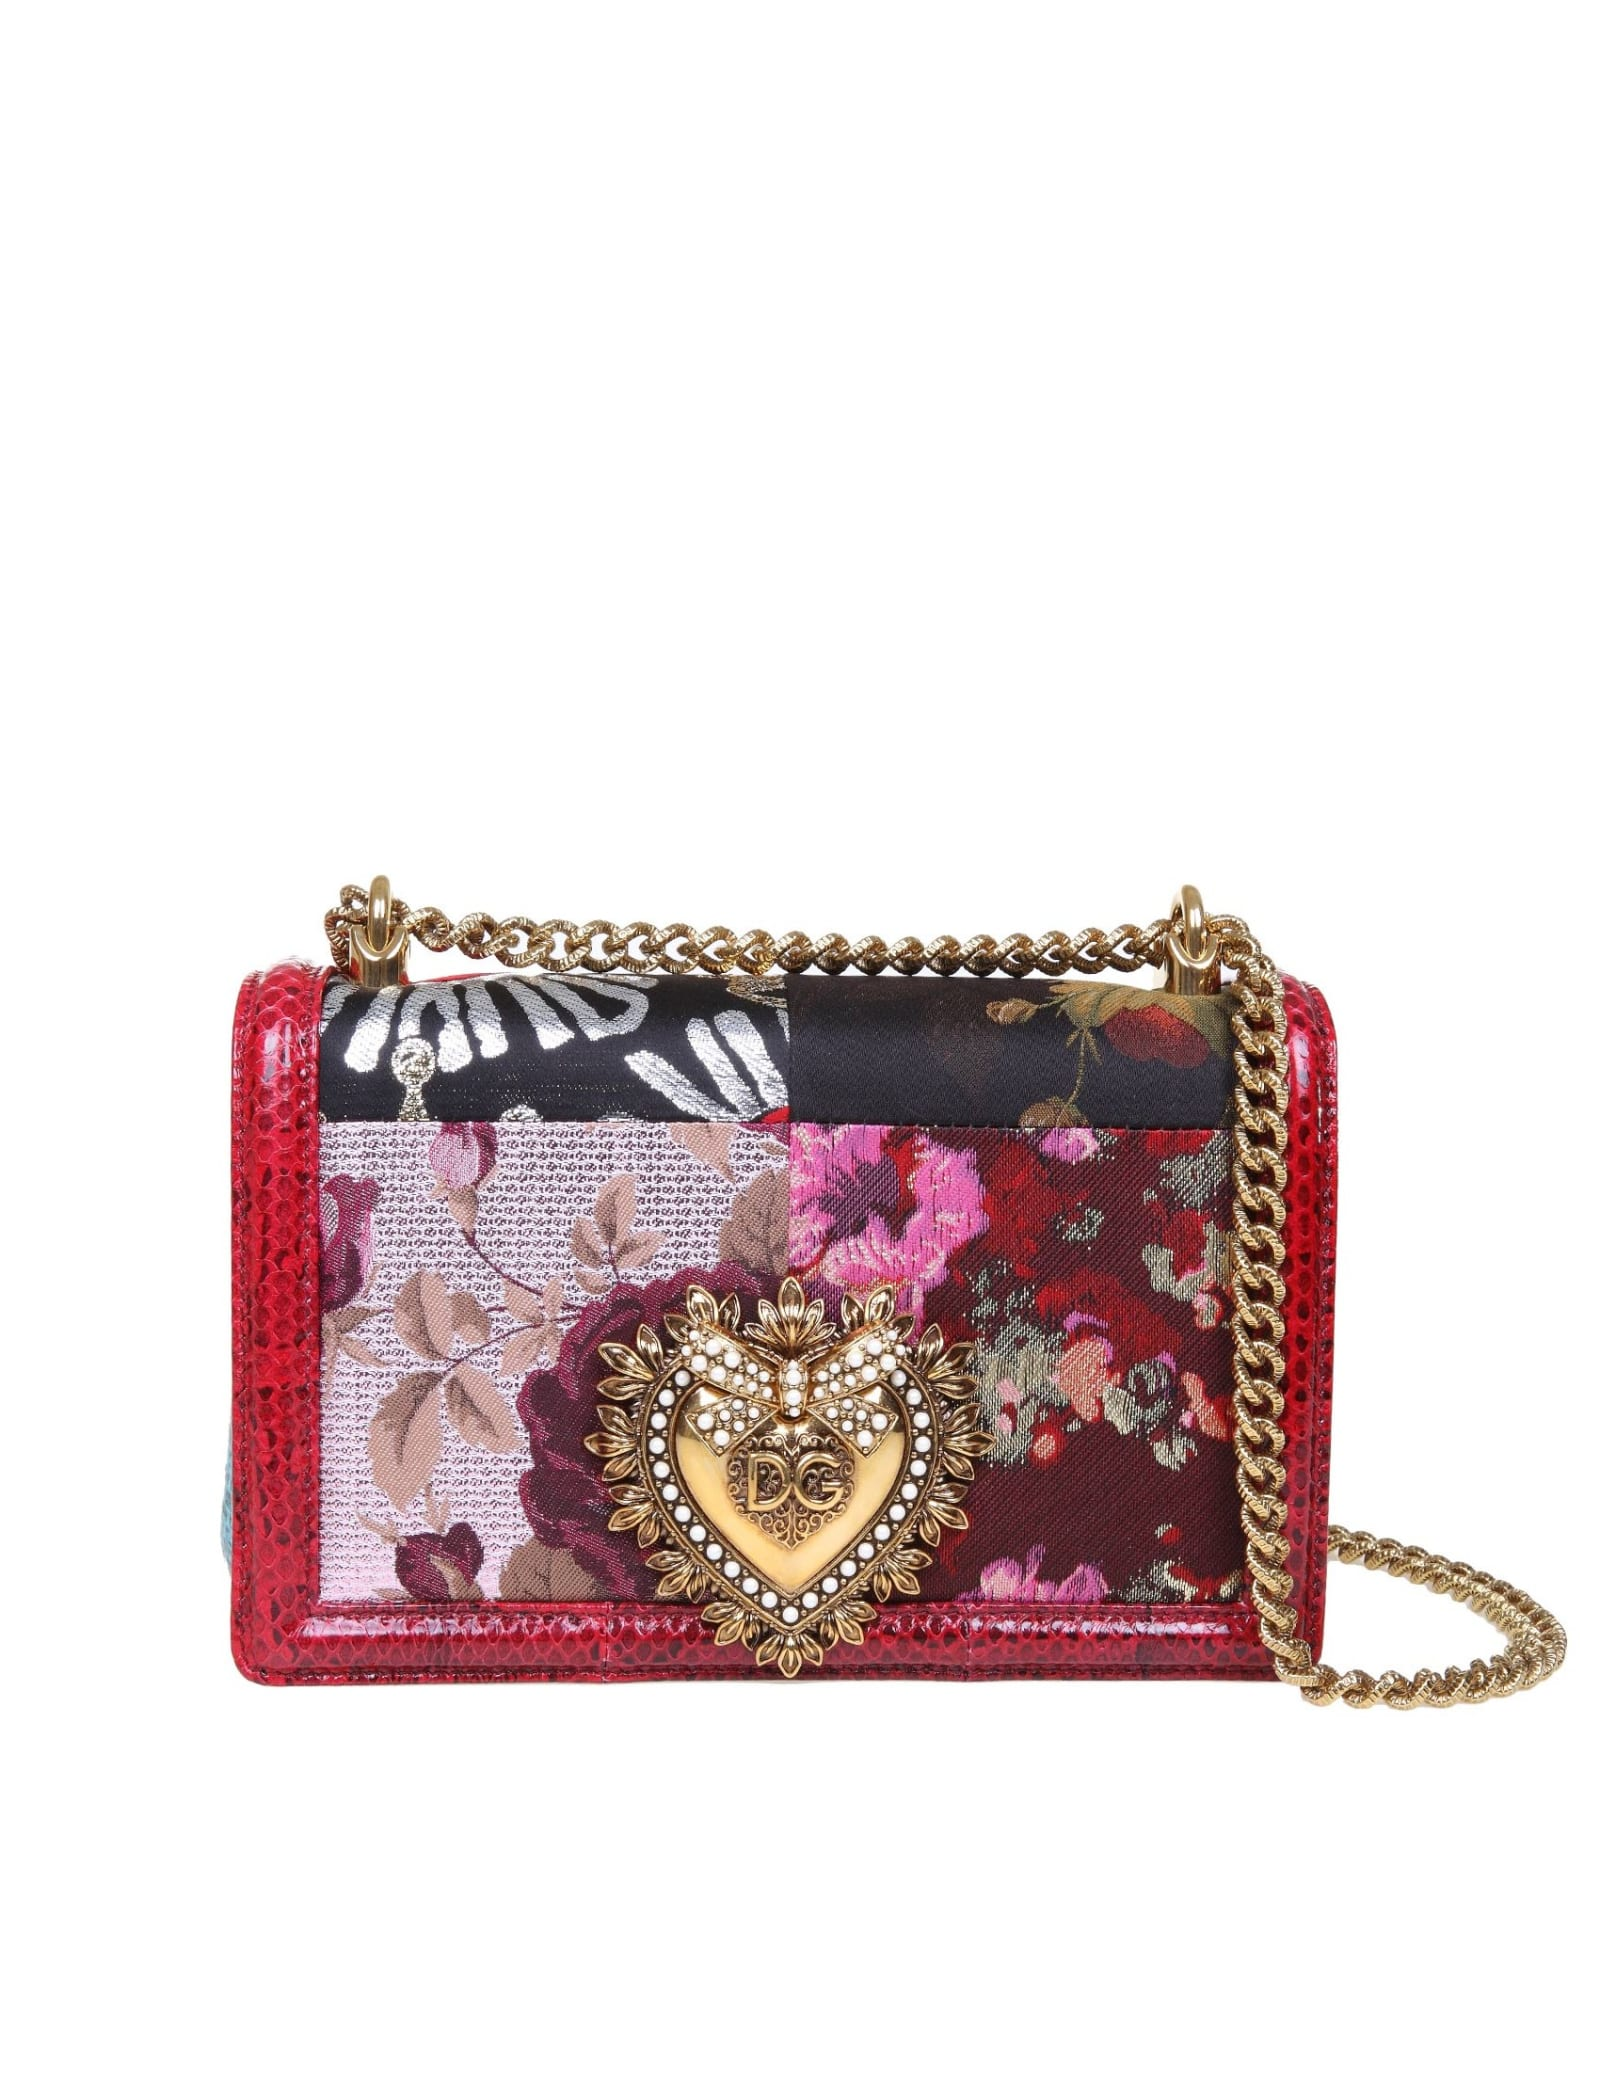 Dolce & Gabbana MEDIUM DEVOTION BAG IN AND FABRIC